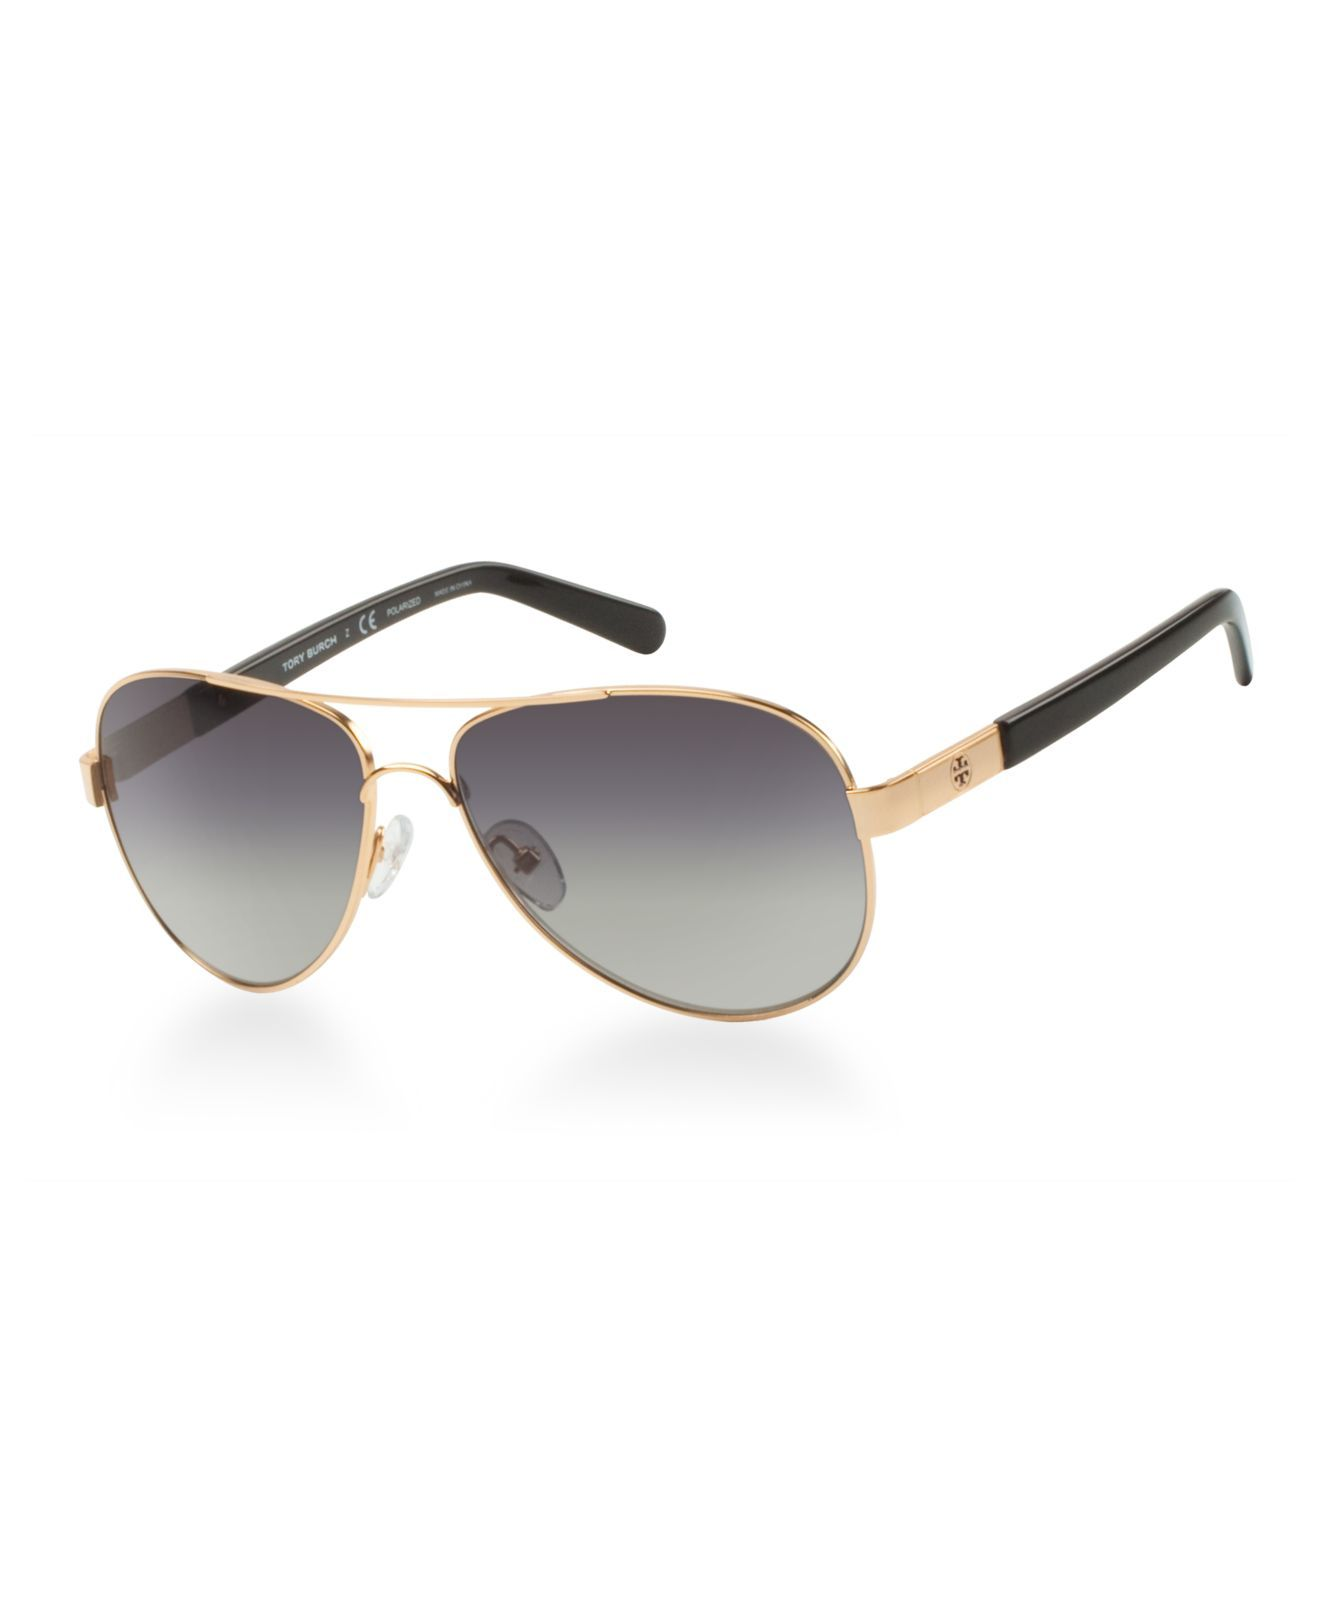 ffda7bcb59a Tory Burch Sunglasses